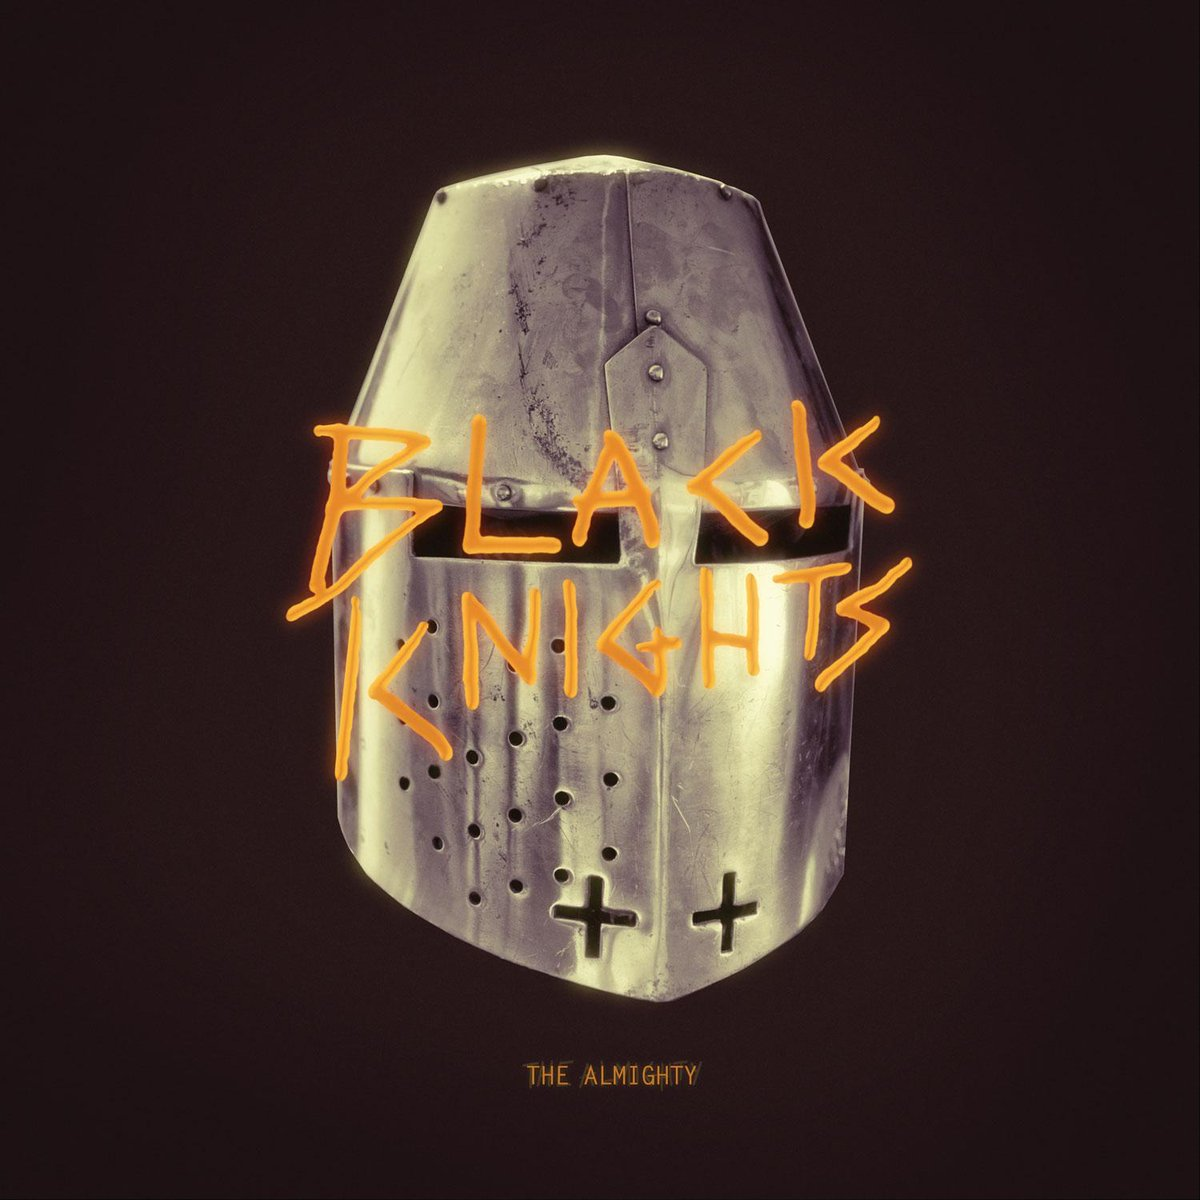 The Almighty by @BlackKnights562, produced by John Frusciante. Out now worldwide via @RCDCLXN  http://t.co/WNx71nFiyY http://t.co/J7peLYrZJf